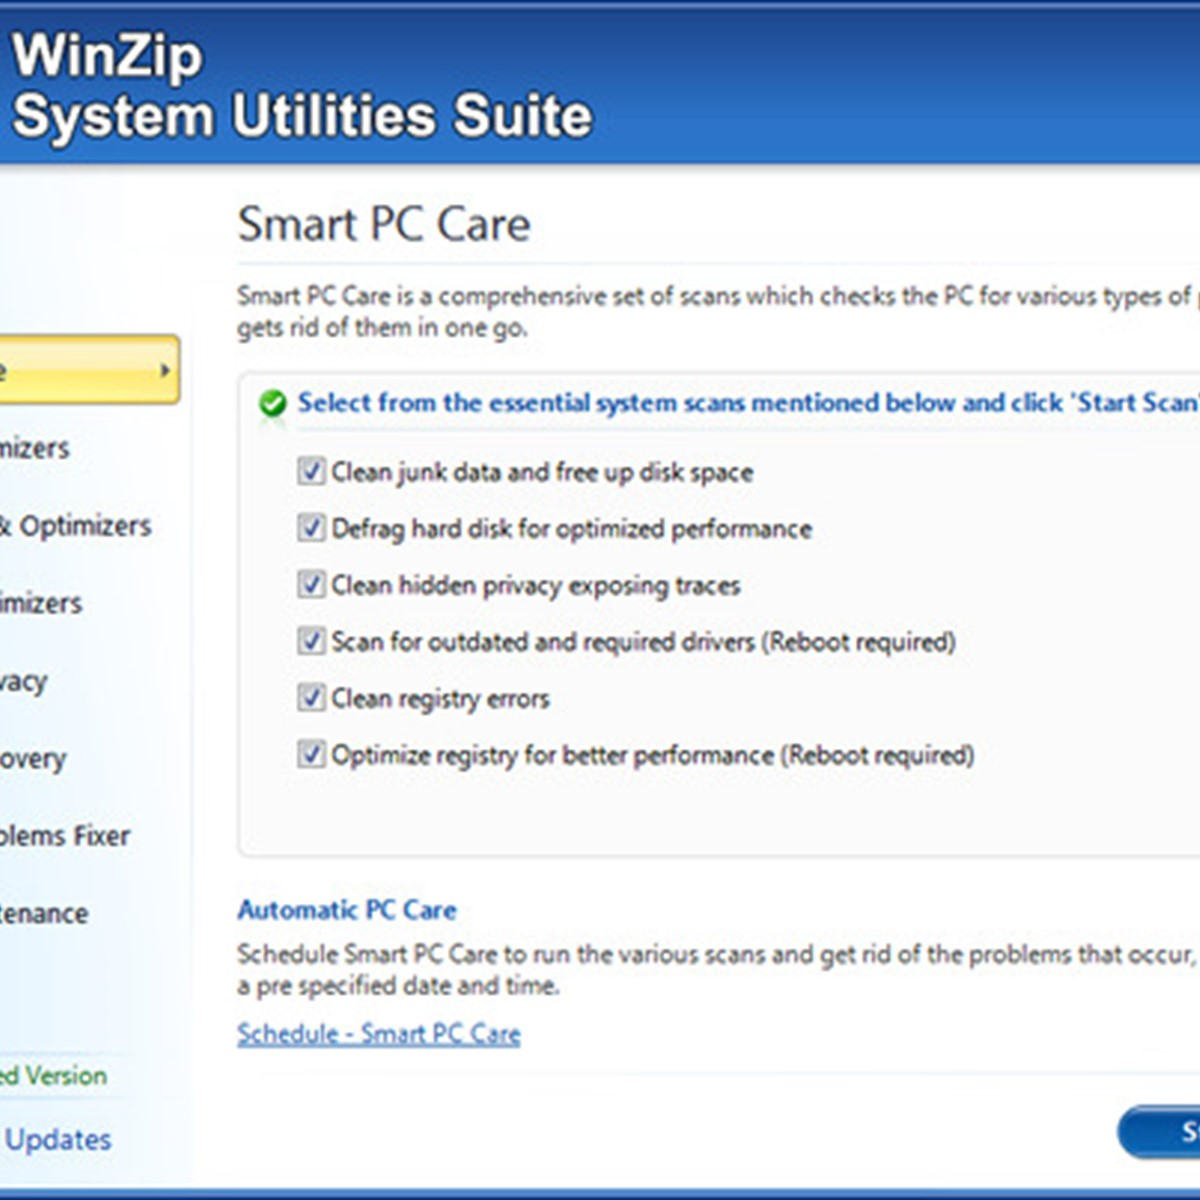 WinZip System Utilities Suite Alternatives and Similar ...